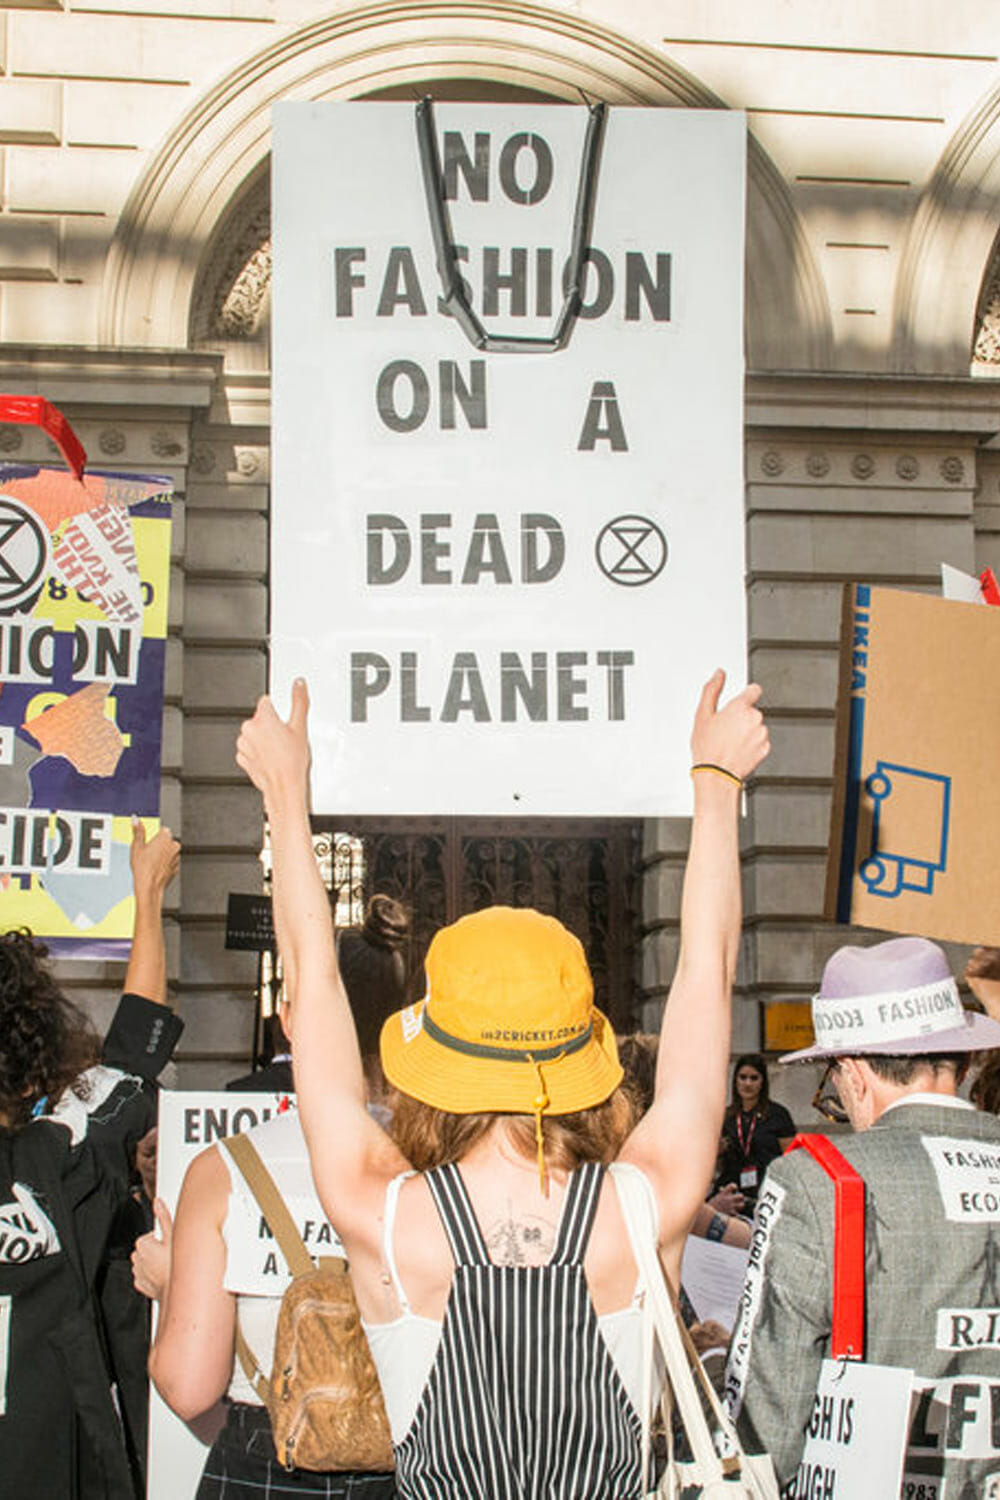 Marching against wasteful fashion